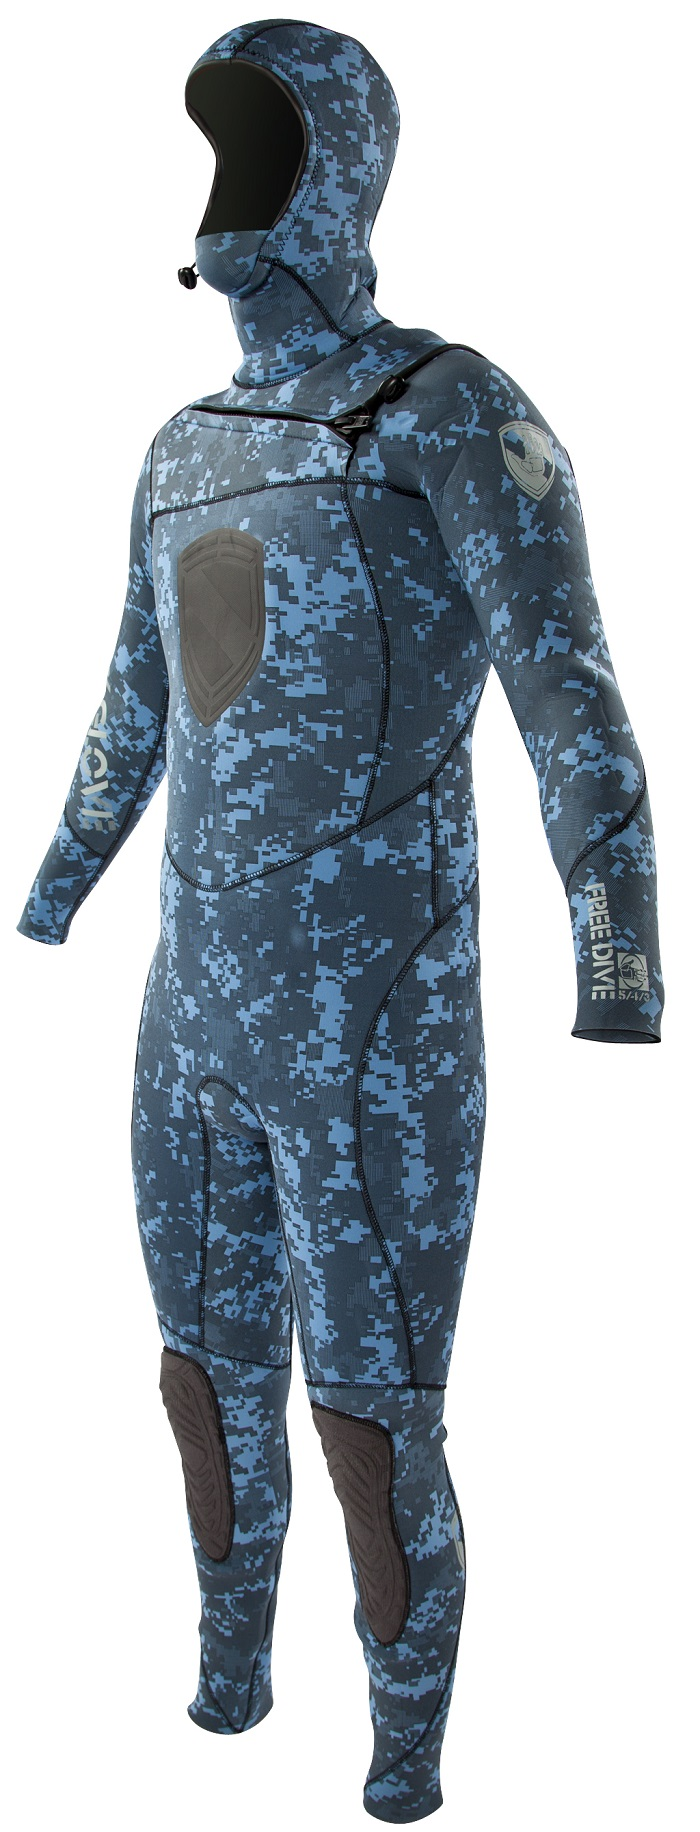 Body Glove 5/4/3mm EX3 Men's Free Dive Hooded Camo Wetsuit- NEW Blue Camo!